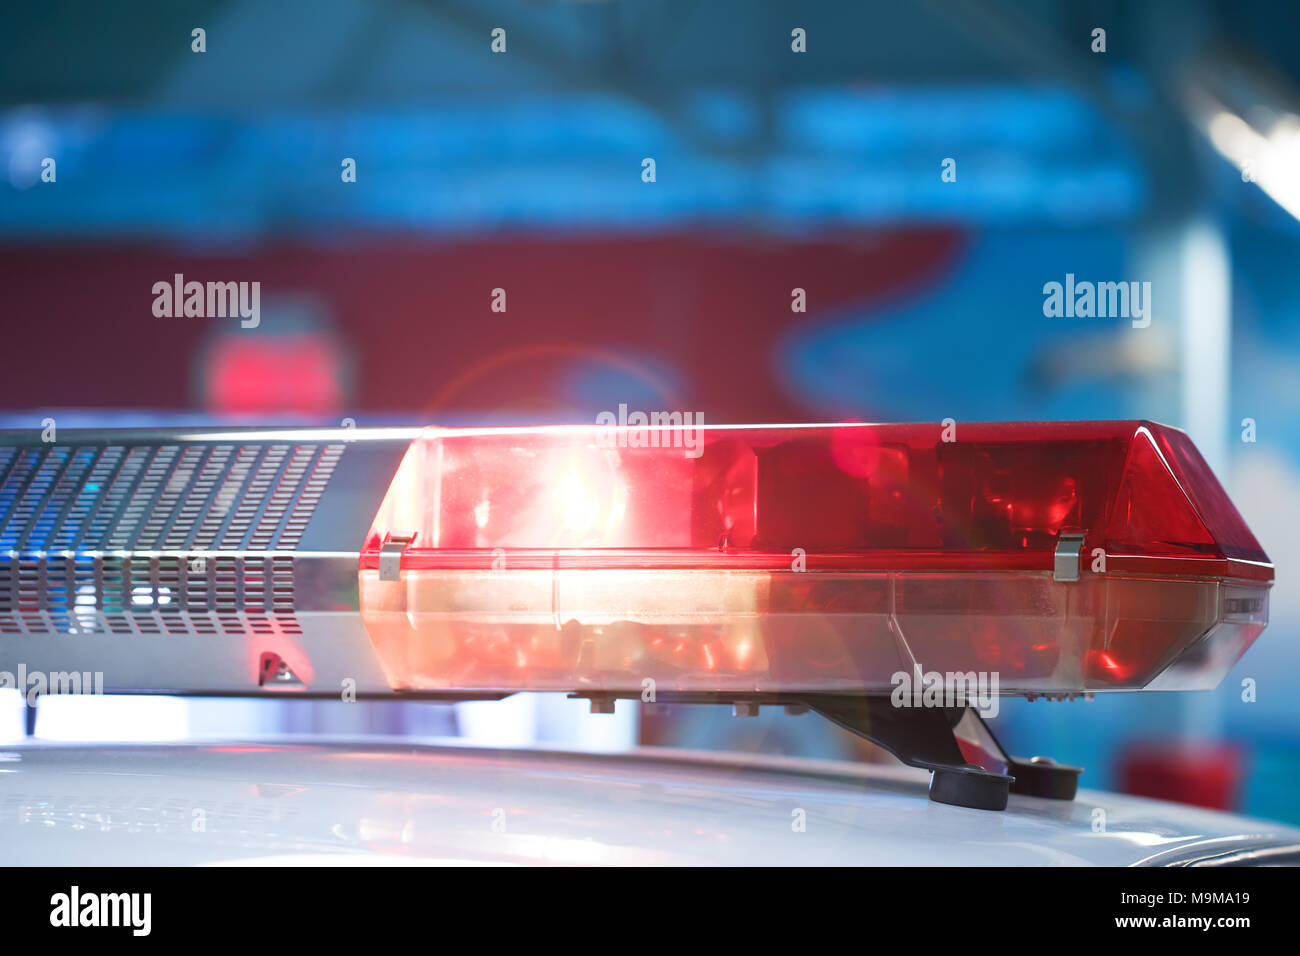 Police Siren Stock Photos Images Alamy Home Hobby Car Lights With Leds On Flashing Close Up Light And The